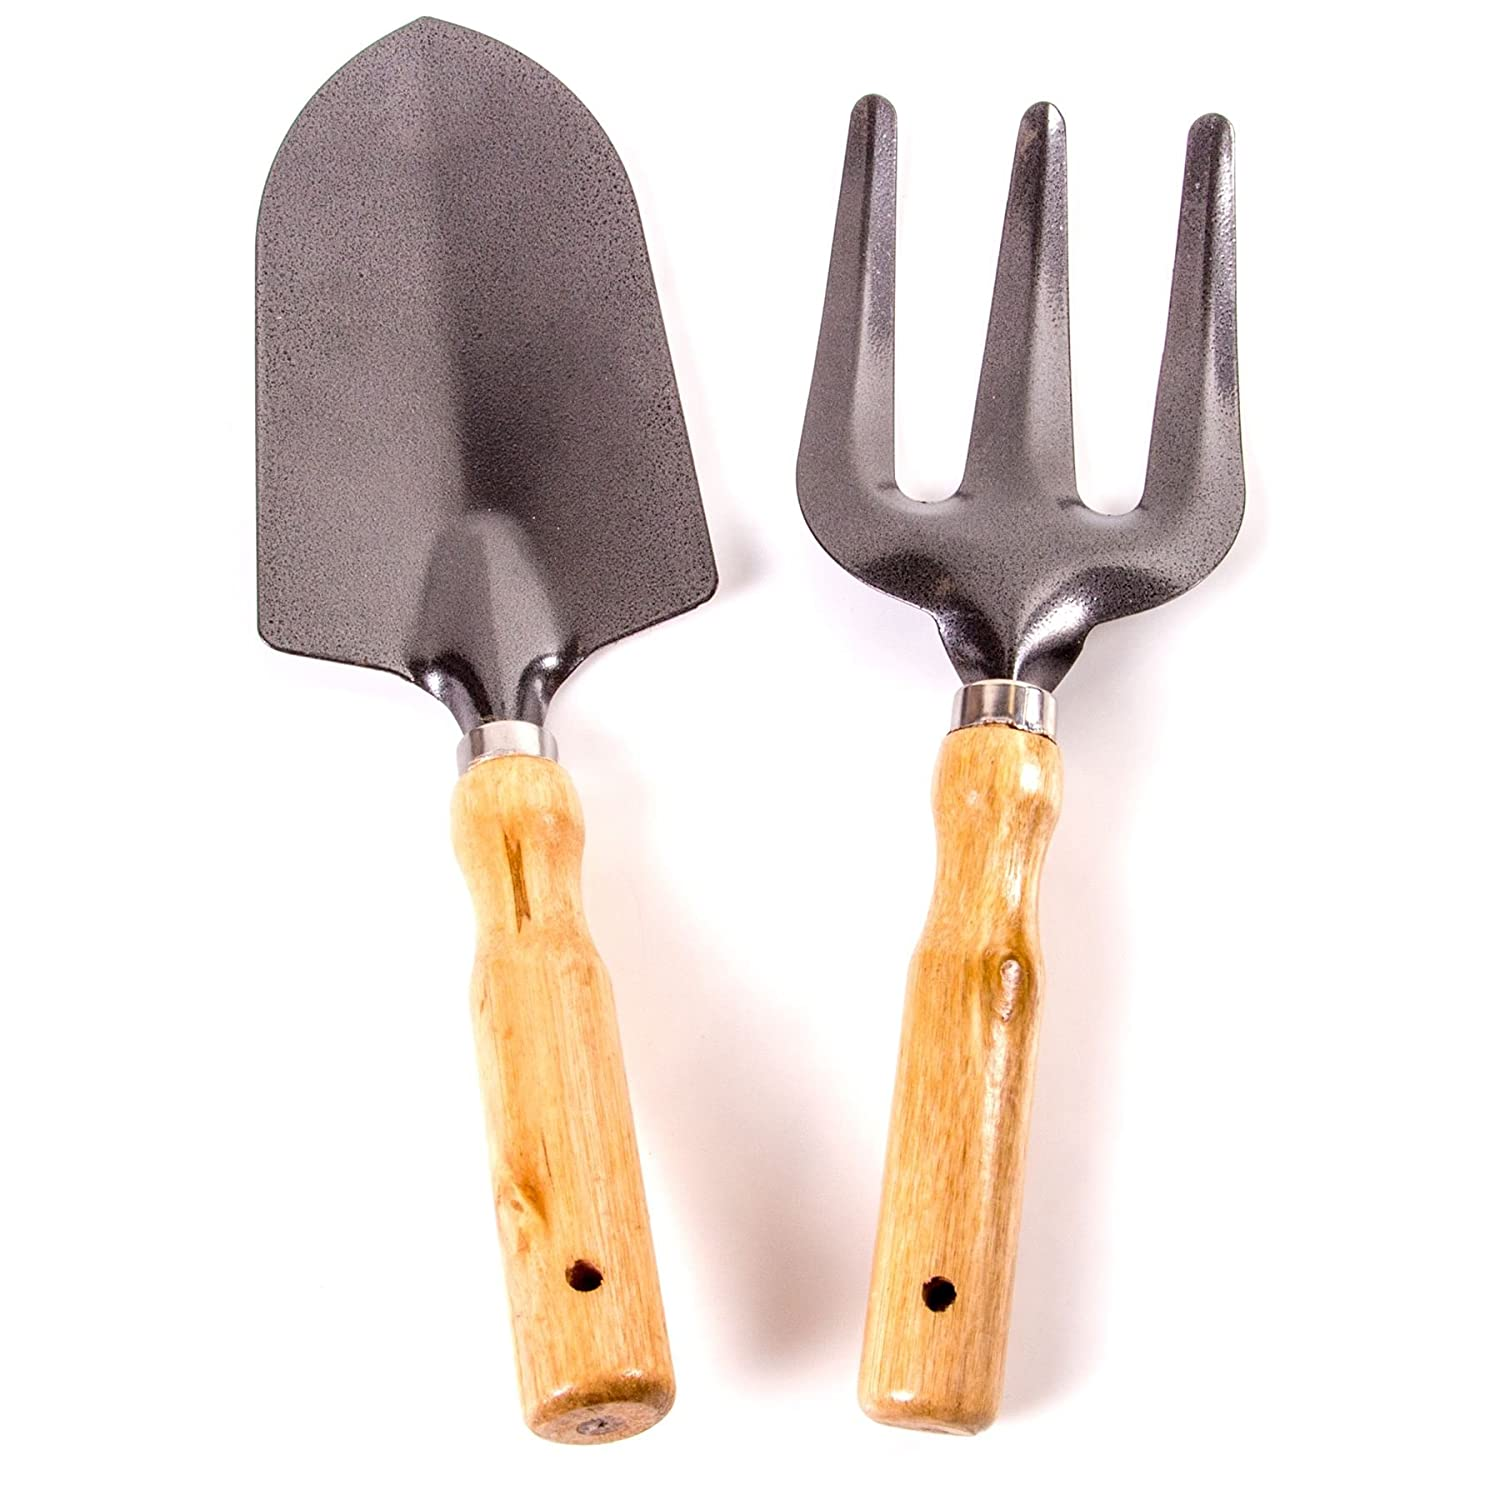 Heavy Duty Garden & Fork Trowel Set With Wooden Handles White Hinge